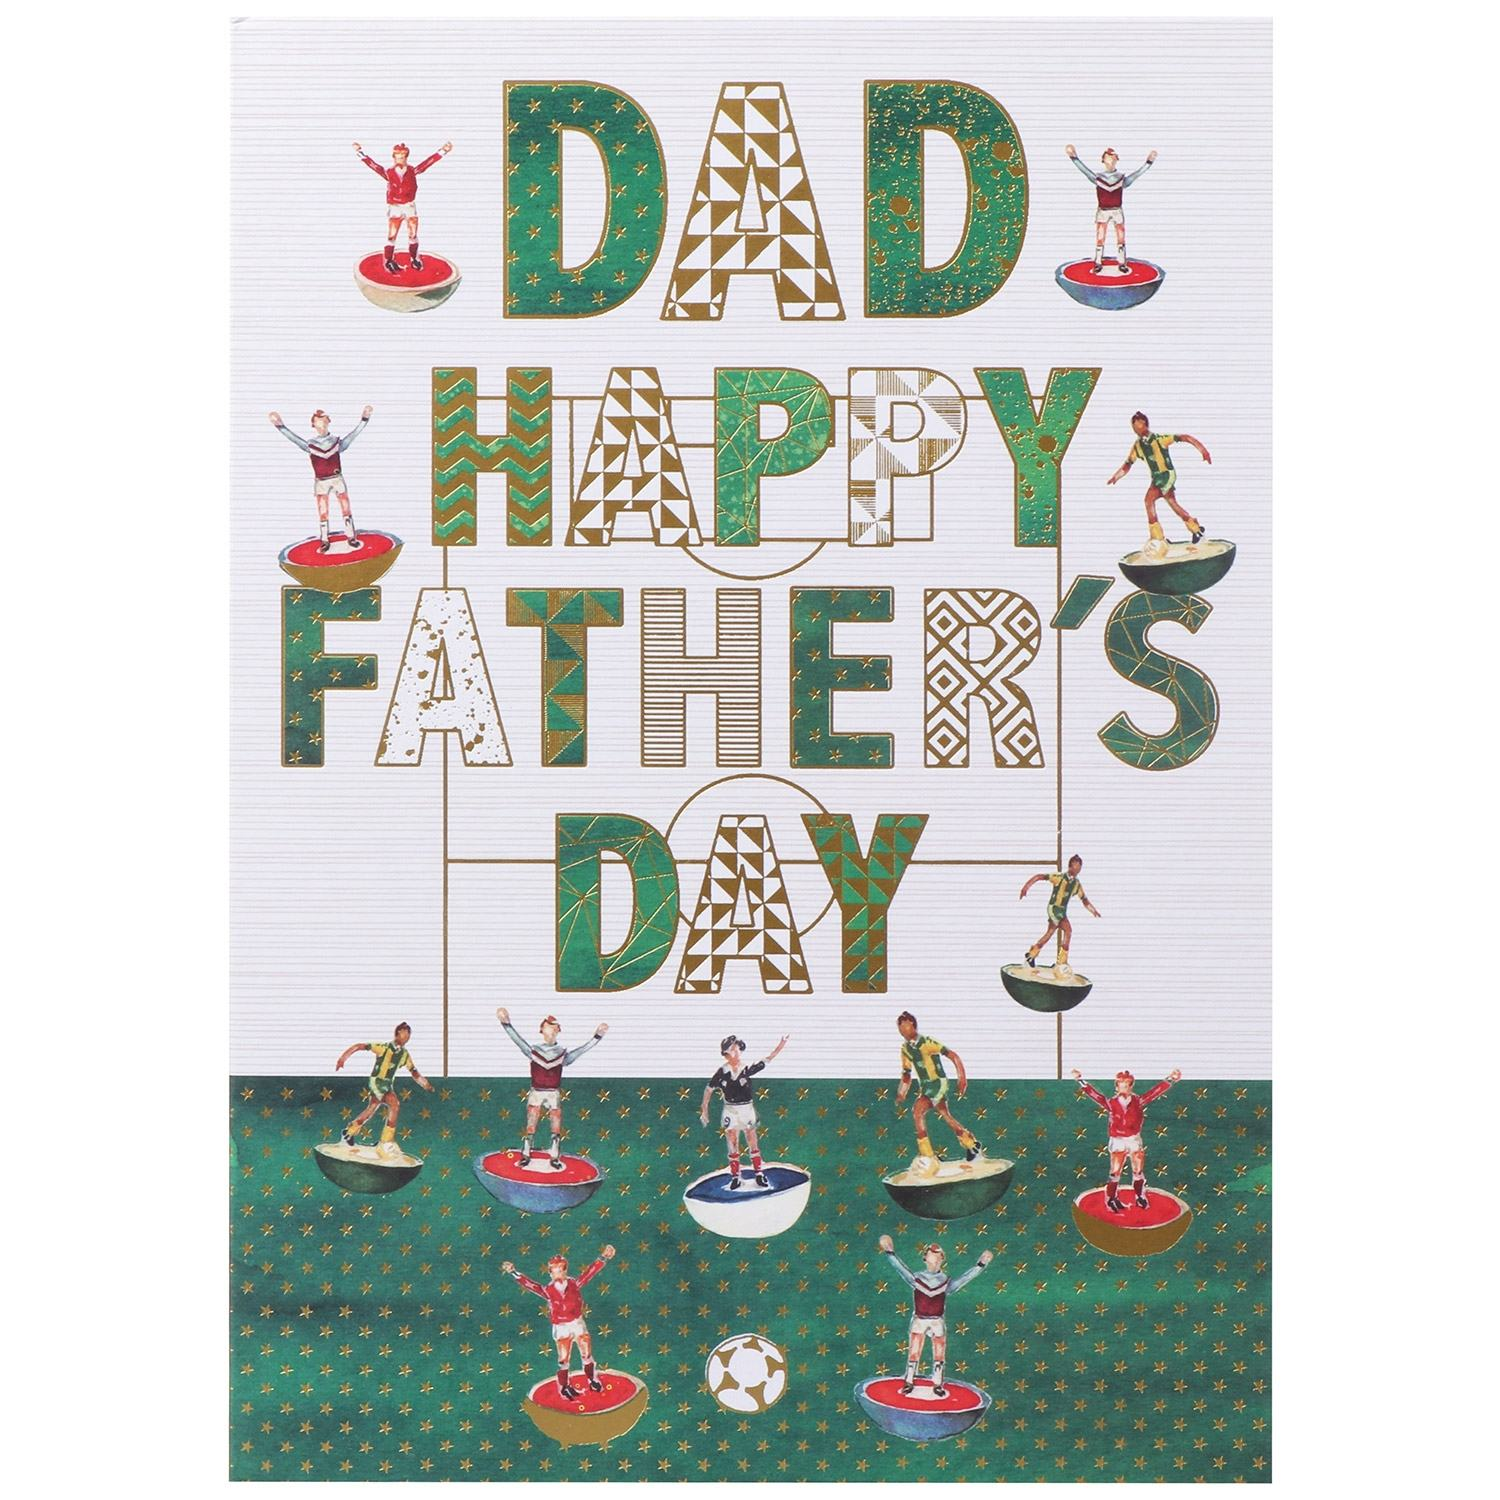 Large 'Subbuteo' Father's Day Card